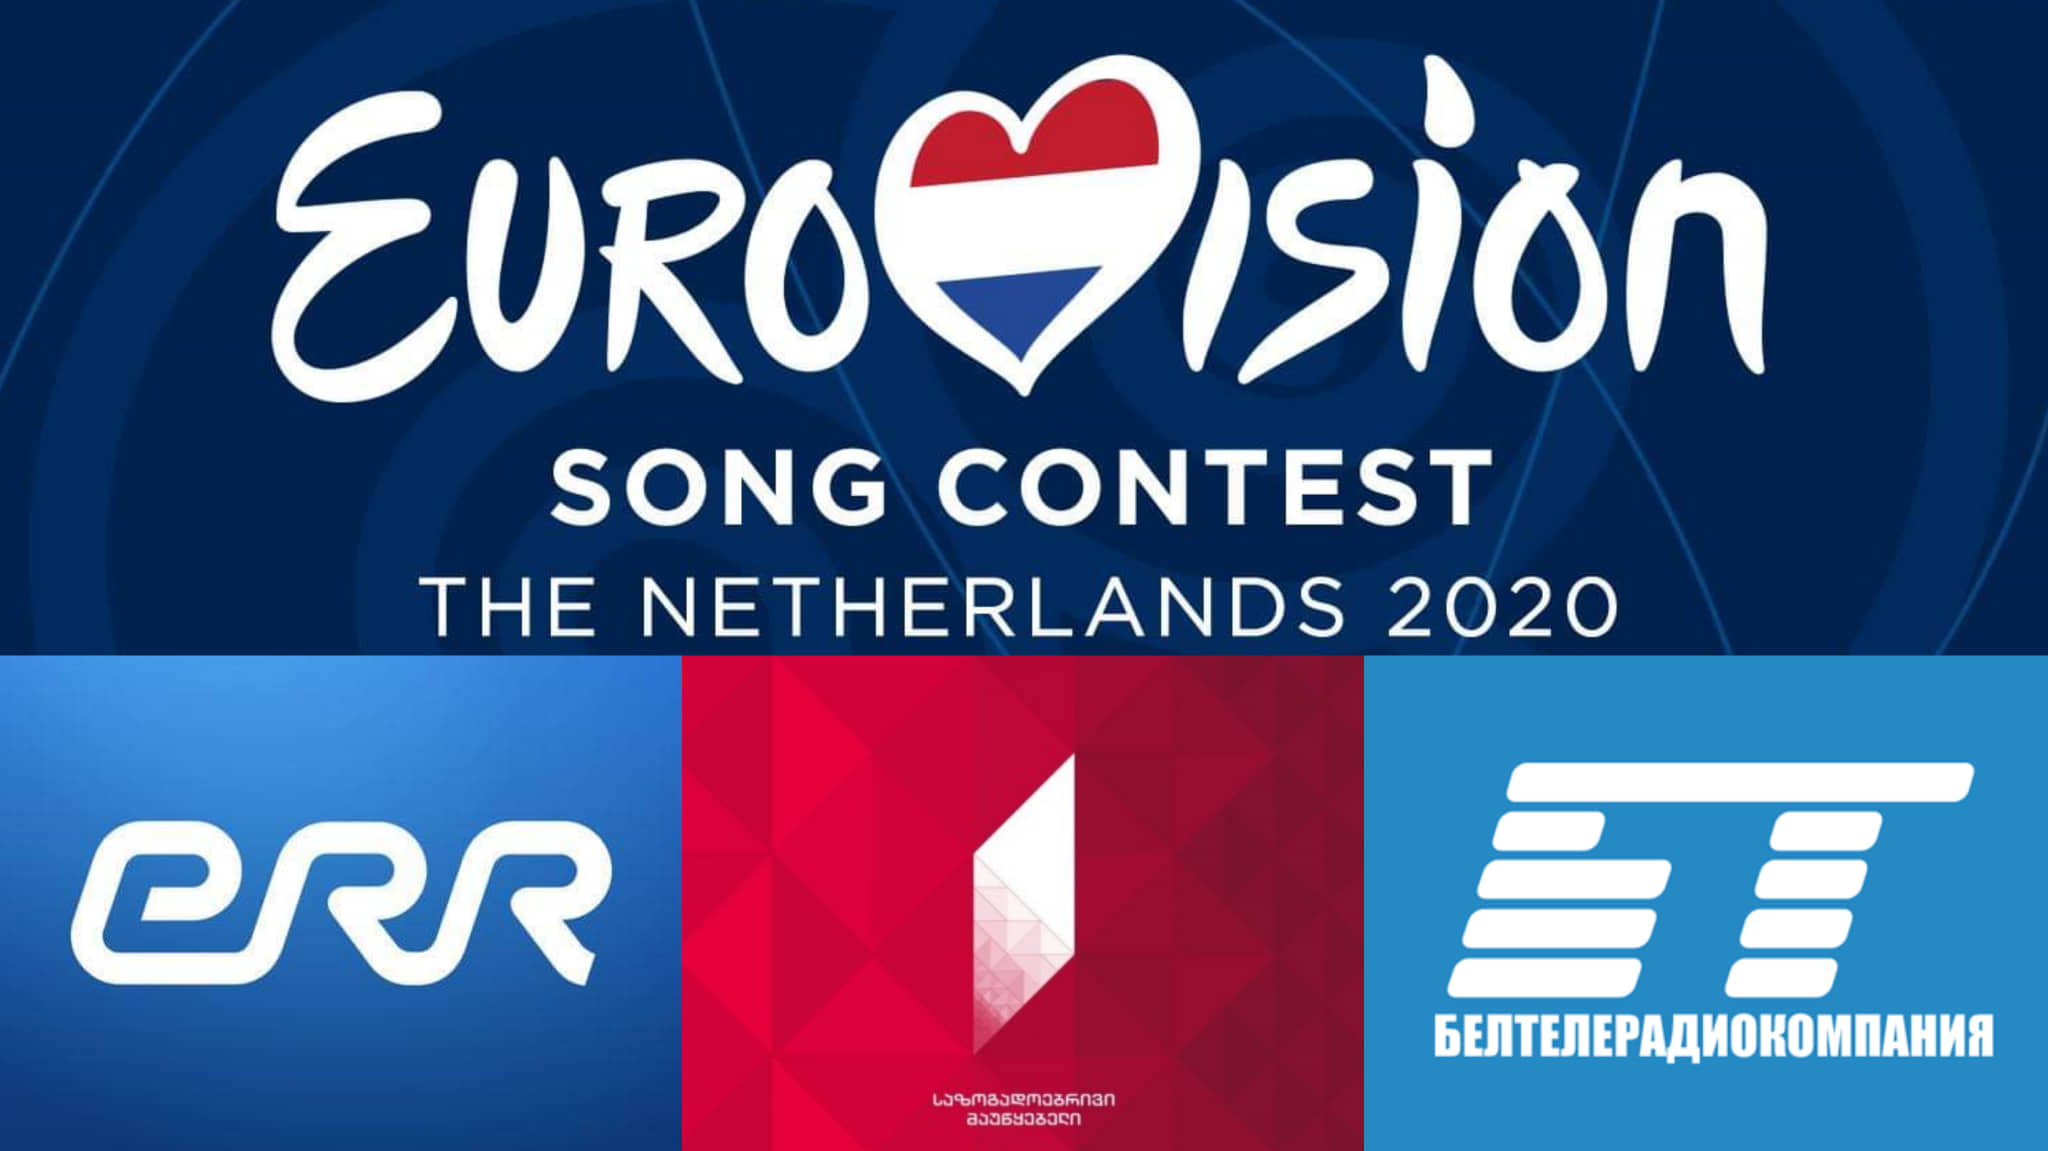 Eurovision 2020 participations: Estonia, Georgia and Belarus will be present in The Netherlands